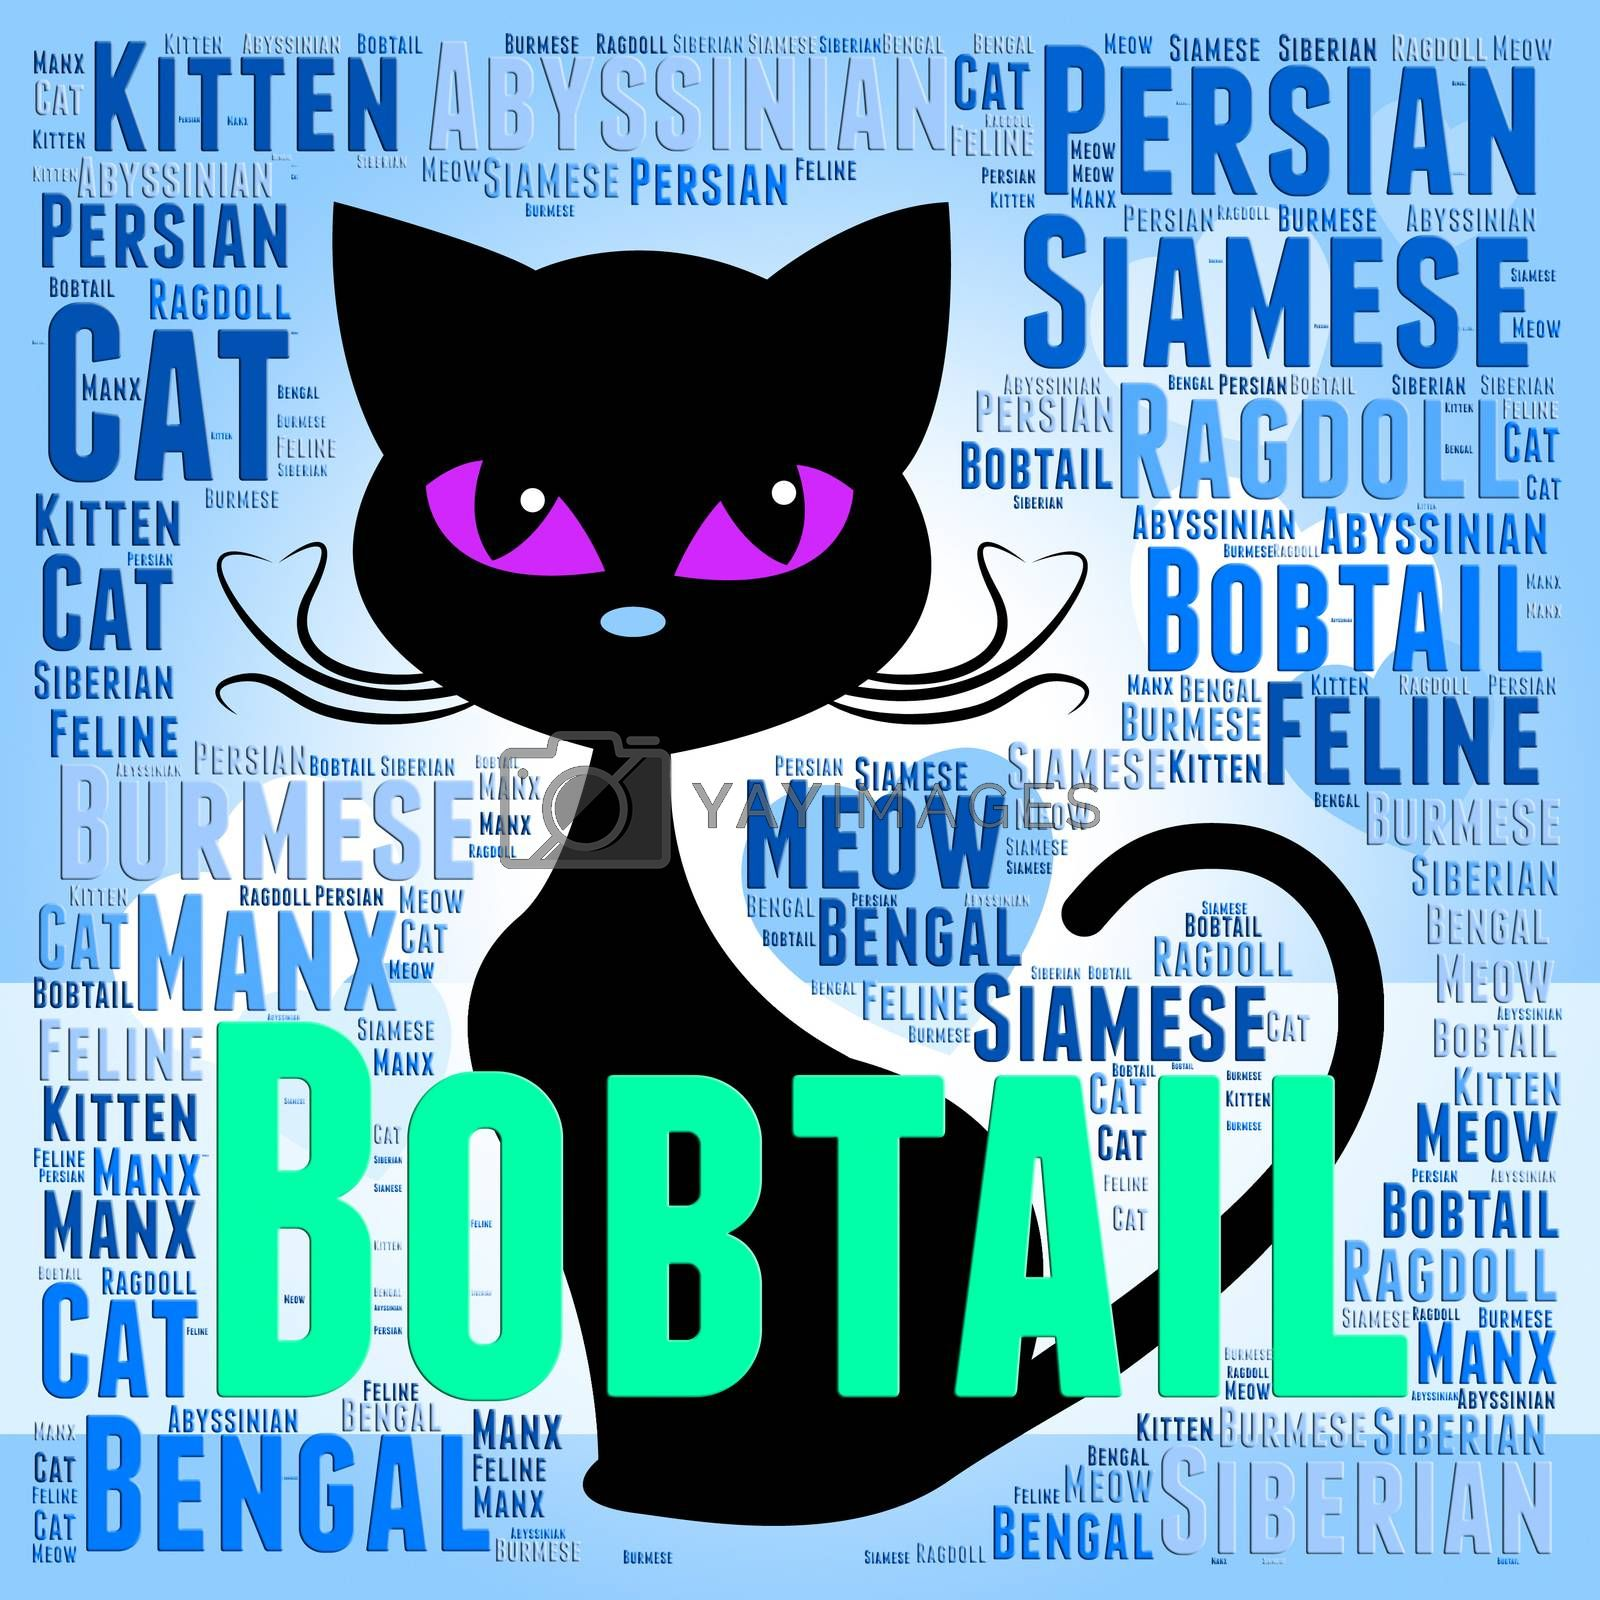 Bobtail Cat Showing Breeds Reproducing And Tails